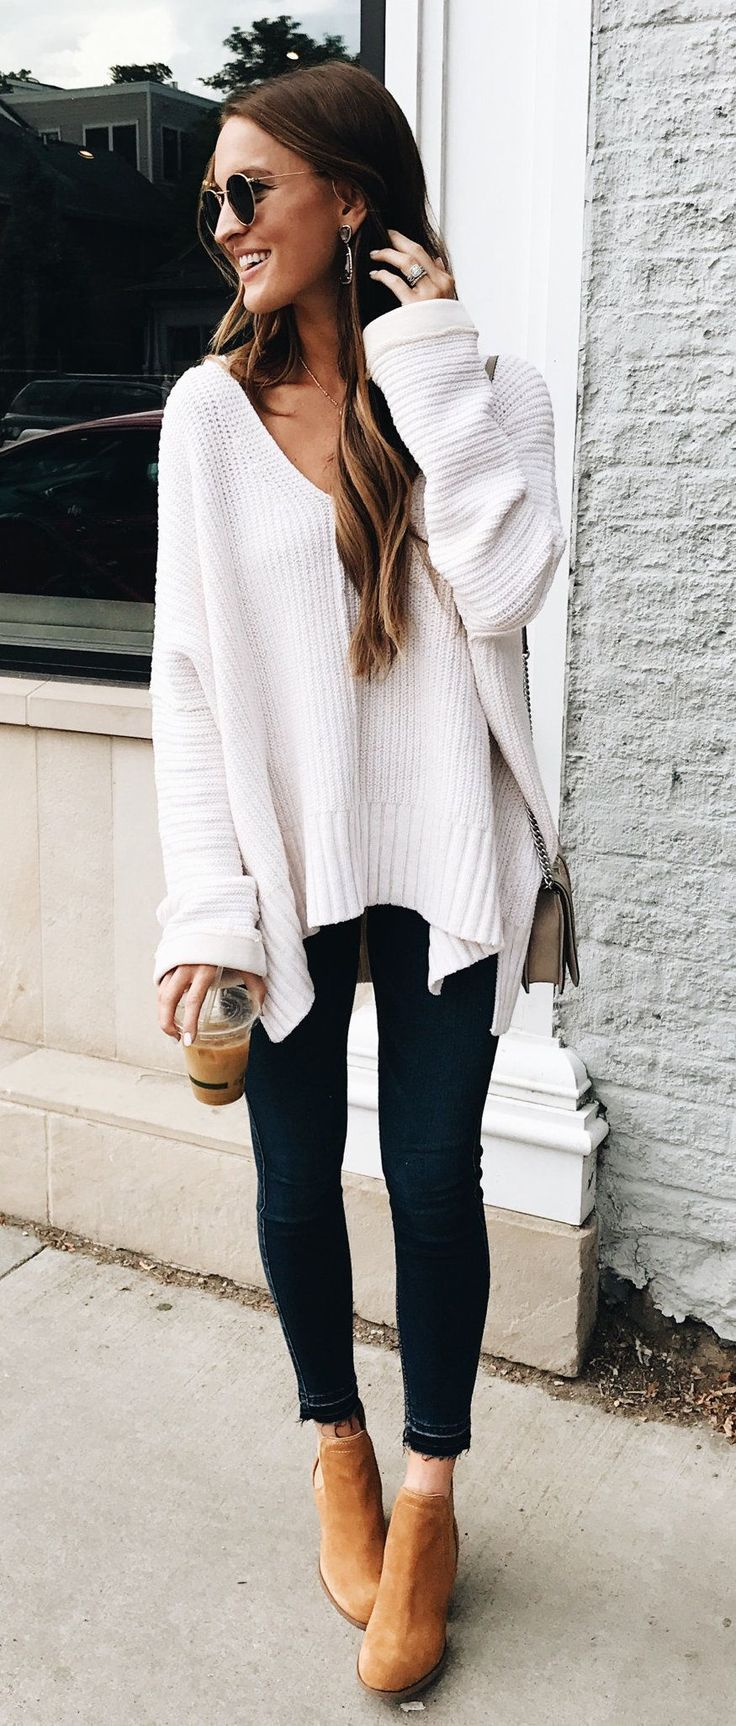 fall outfits women 39 s white cardigan outfit ideas for women fall outfits winter outfits. Black Bedroom Furniture Sets. Home Design Ideas